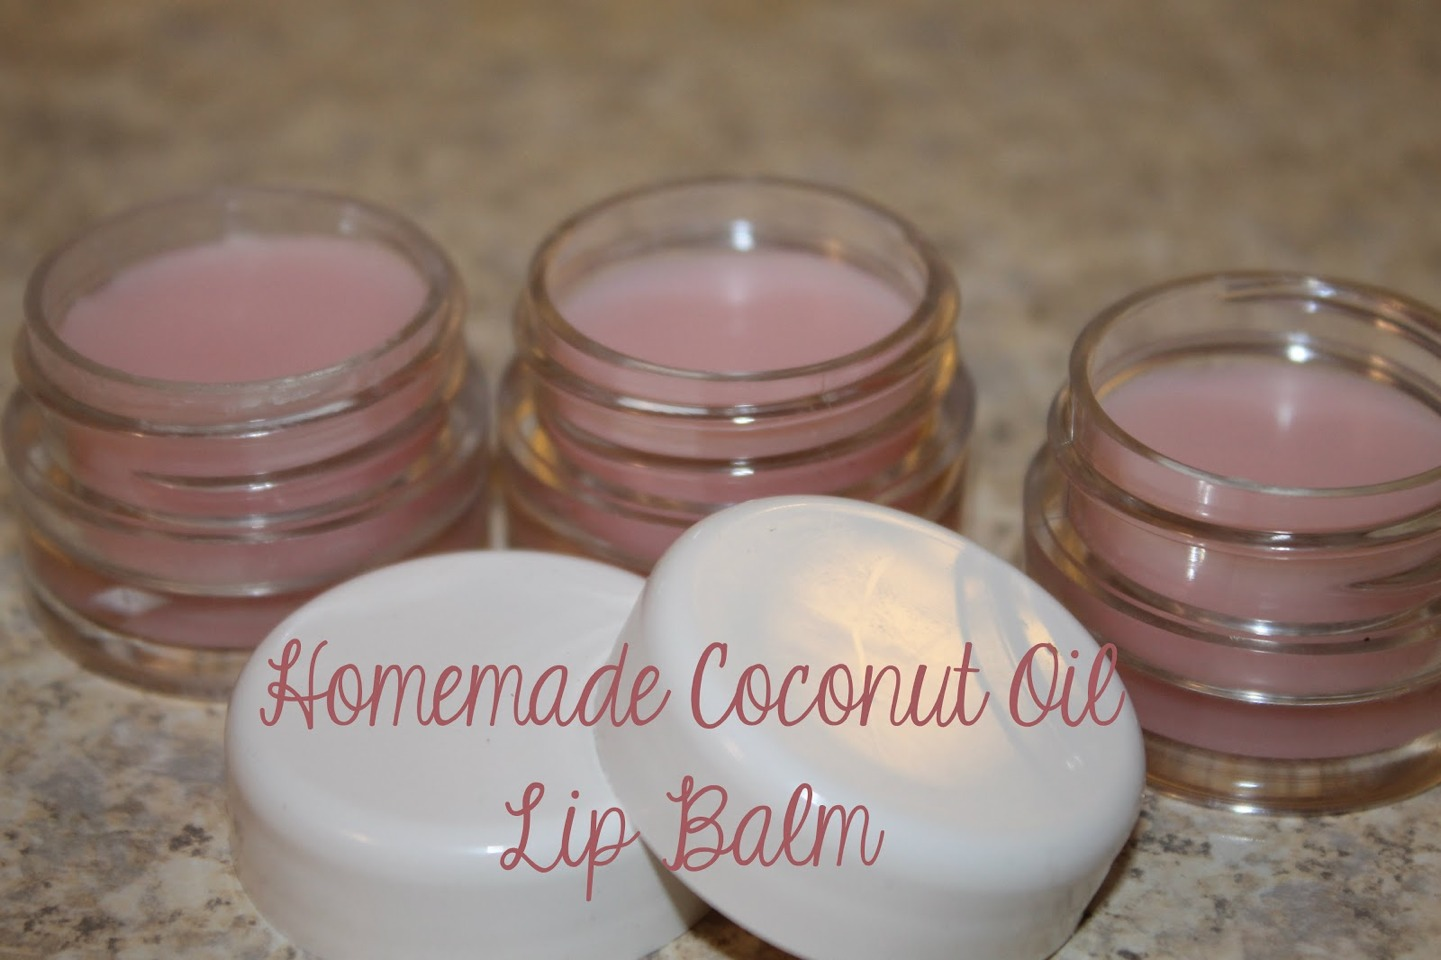 You can make lip balm. Just get an altoids can and melt 2 tablespoons of coconut oil them dump into tin and put in freezer for 10 minutes or until hard.